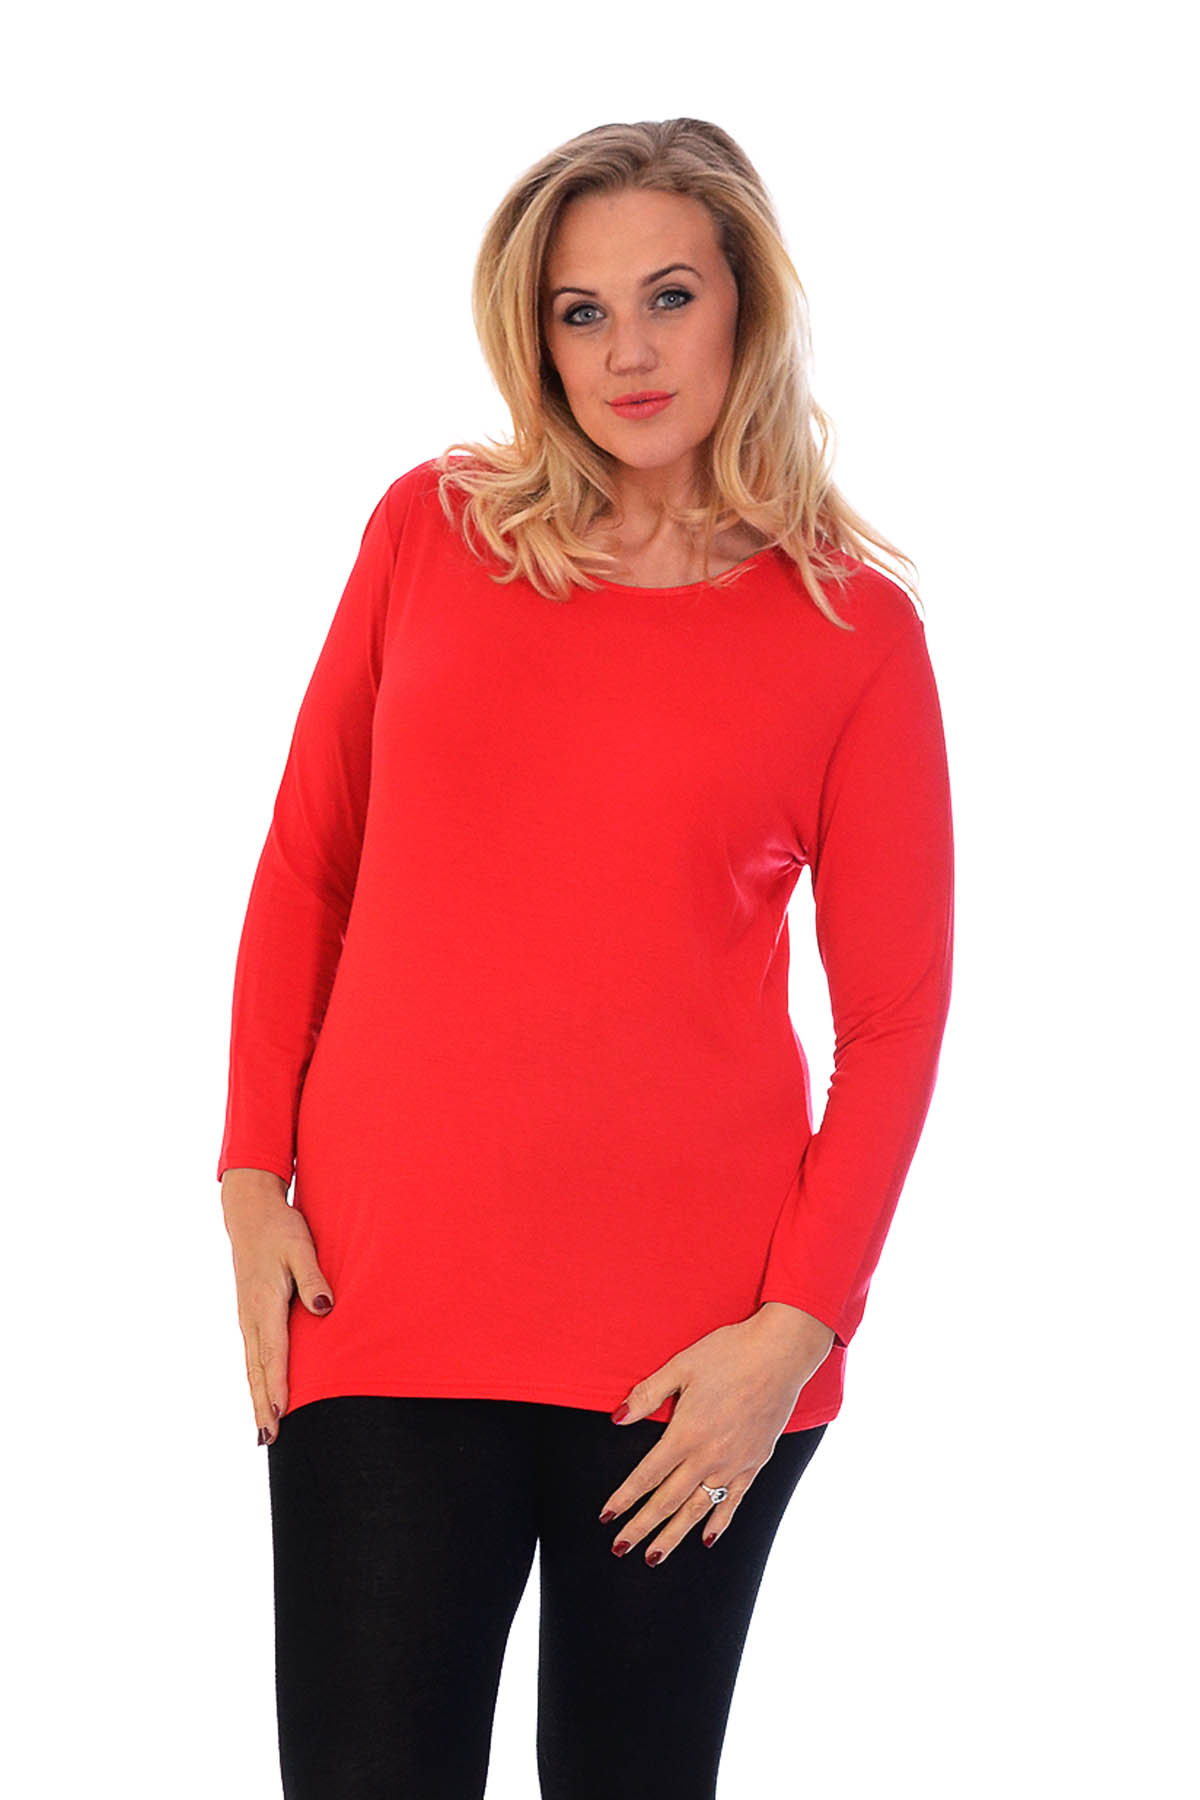 New ladies plus size top womens t shirt plain long sleeve for 3 4 sleeve t shirts plus size